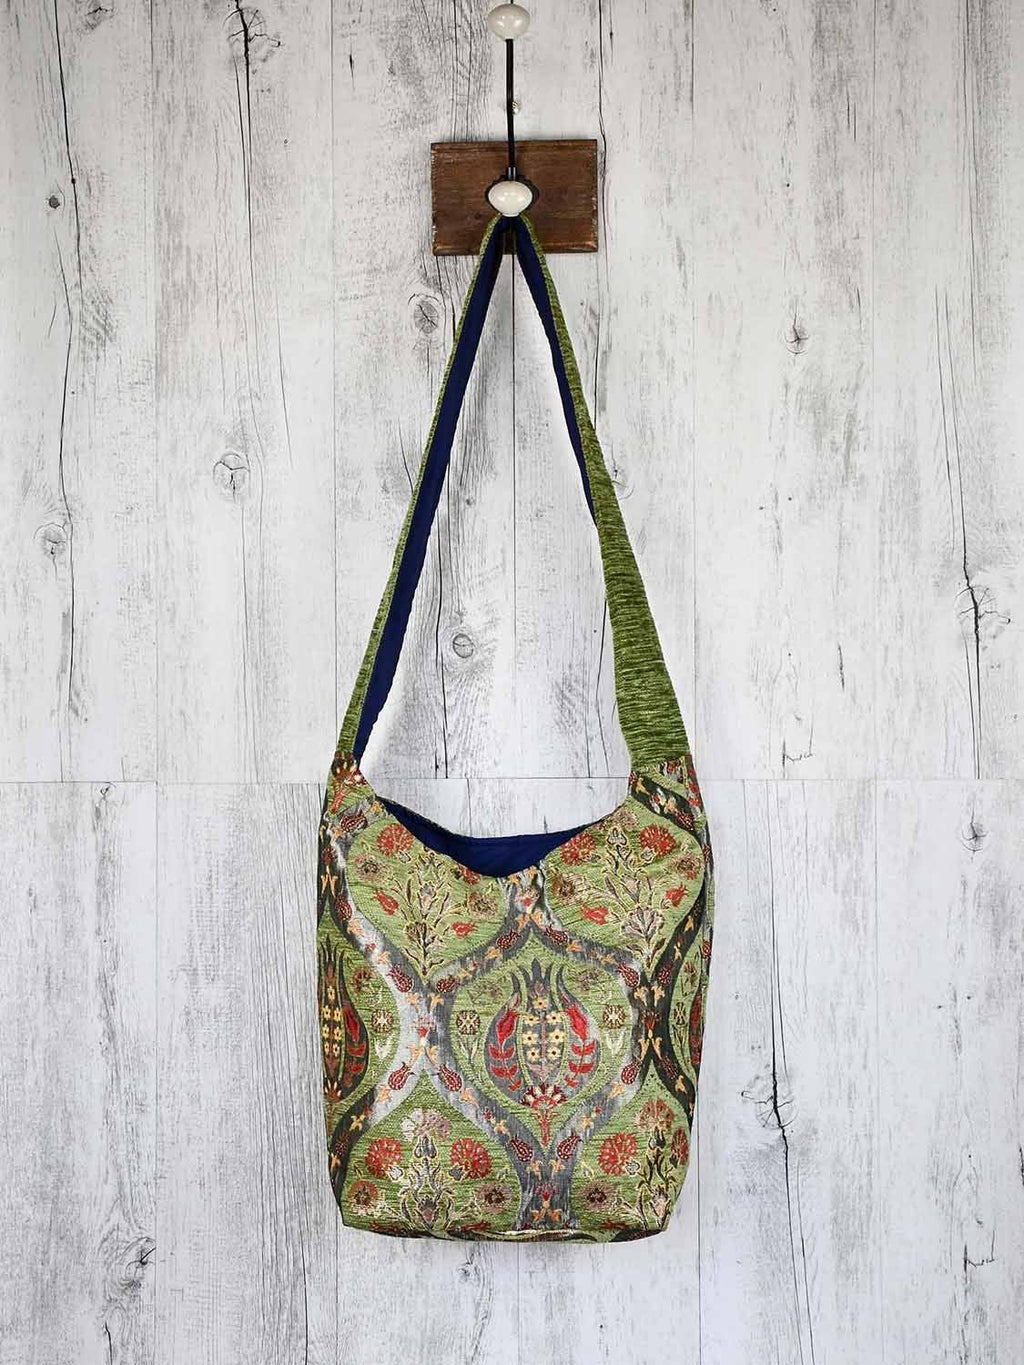 Turkish Handbag Shoulder Tulip Carnation Light Green Textile Sydney Grand Bazaar